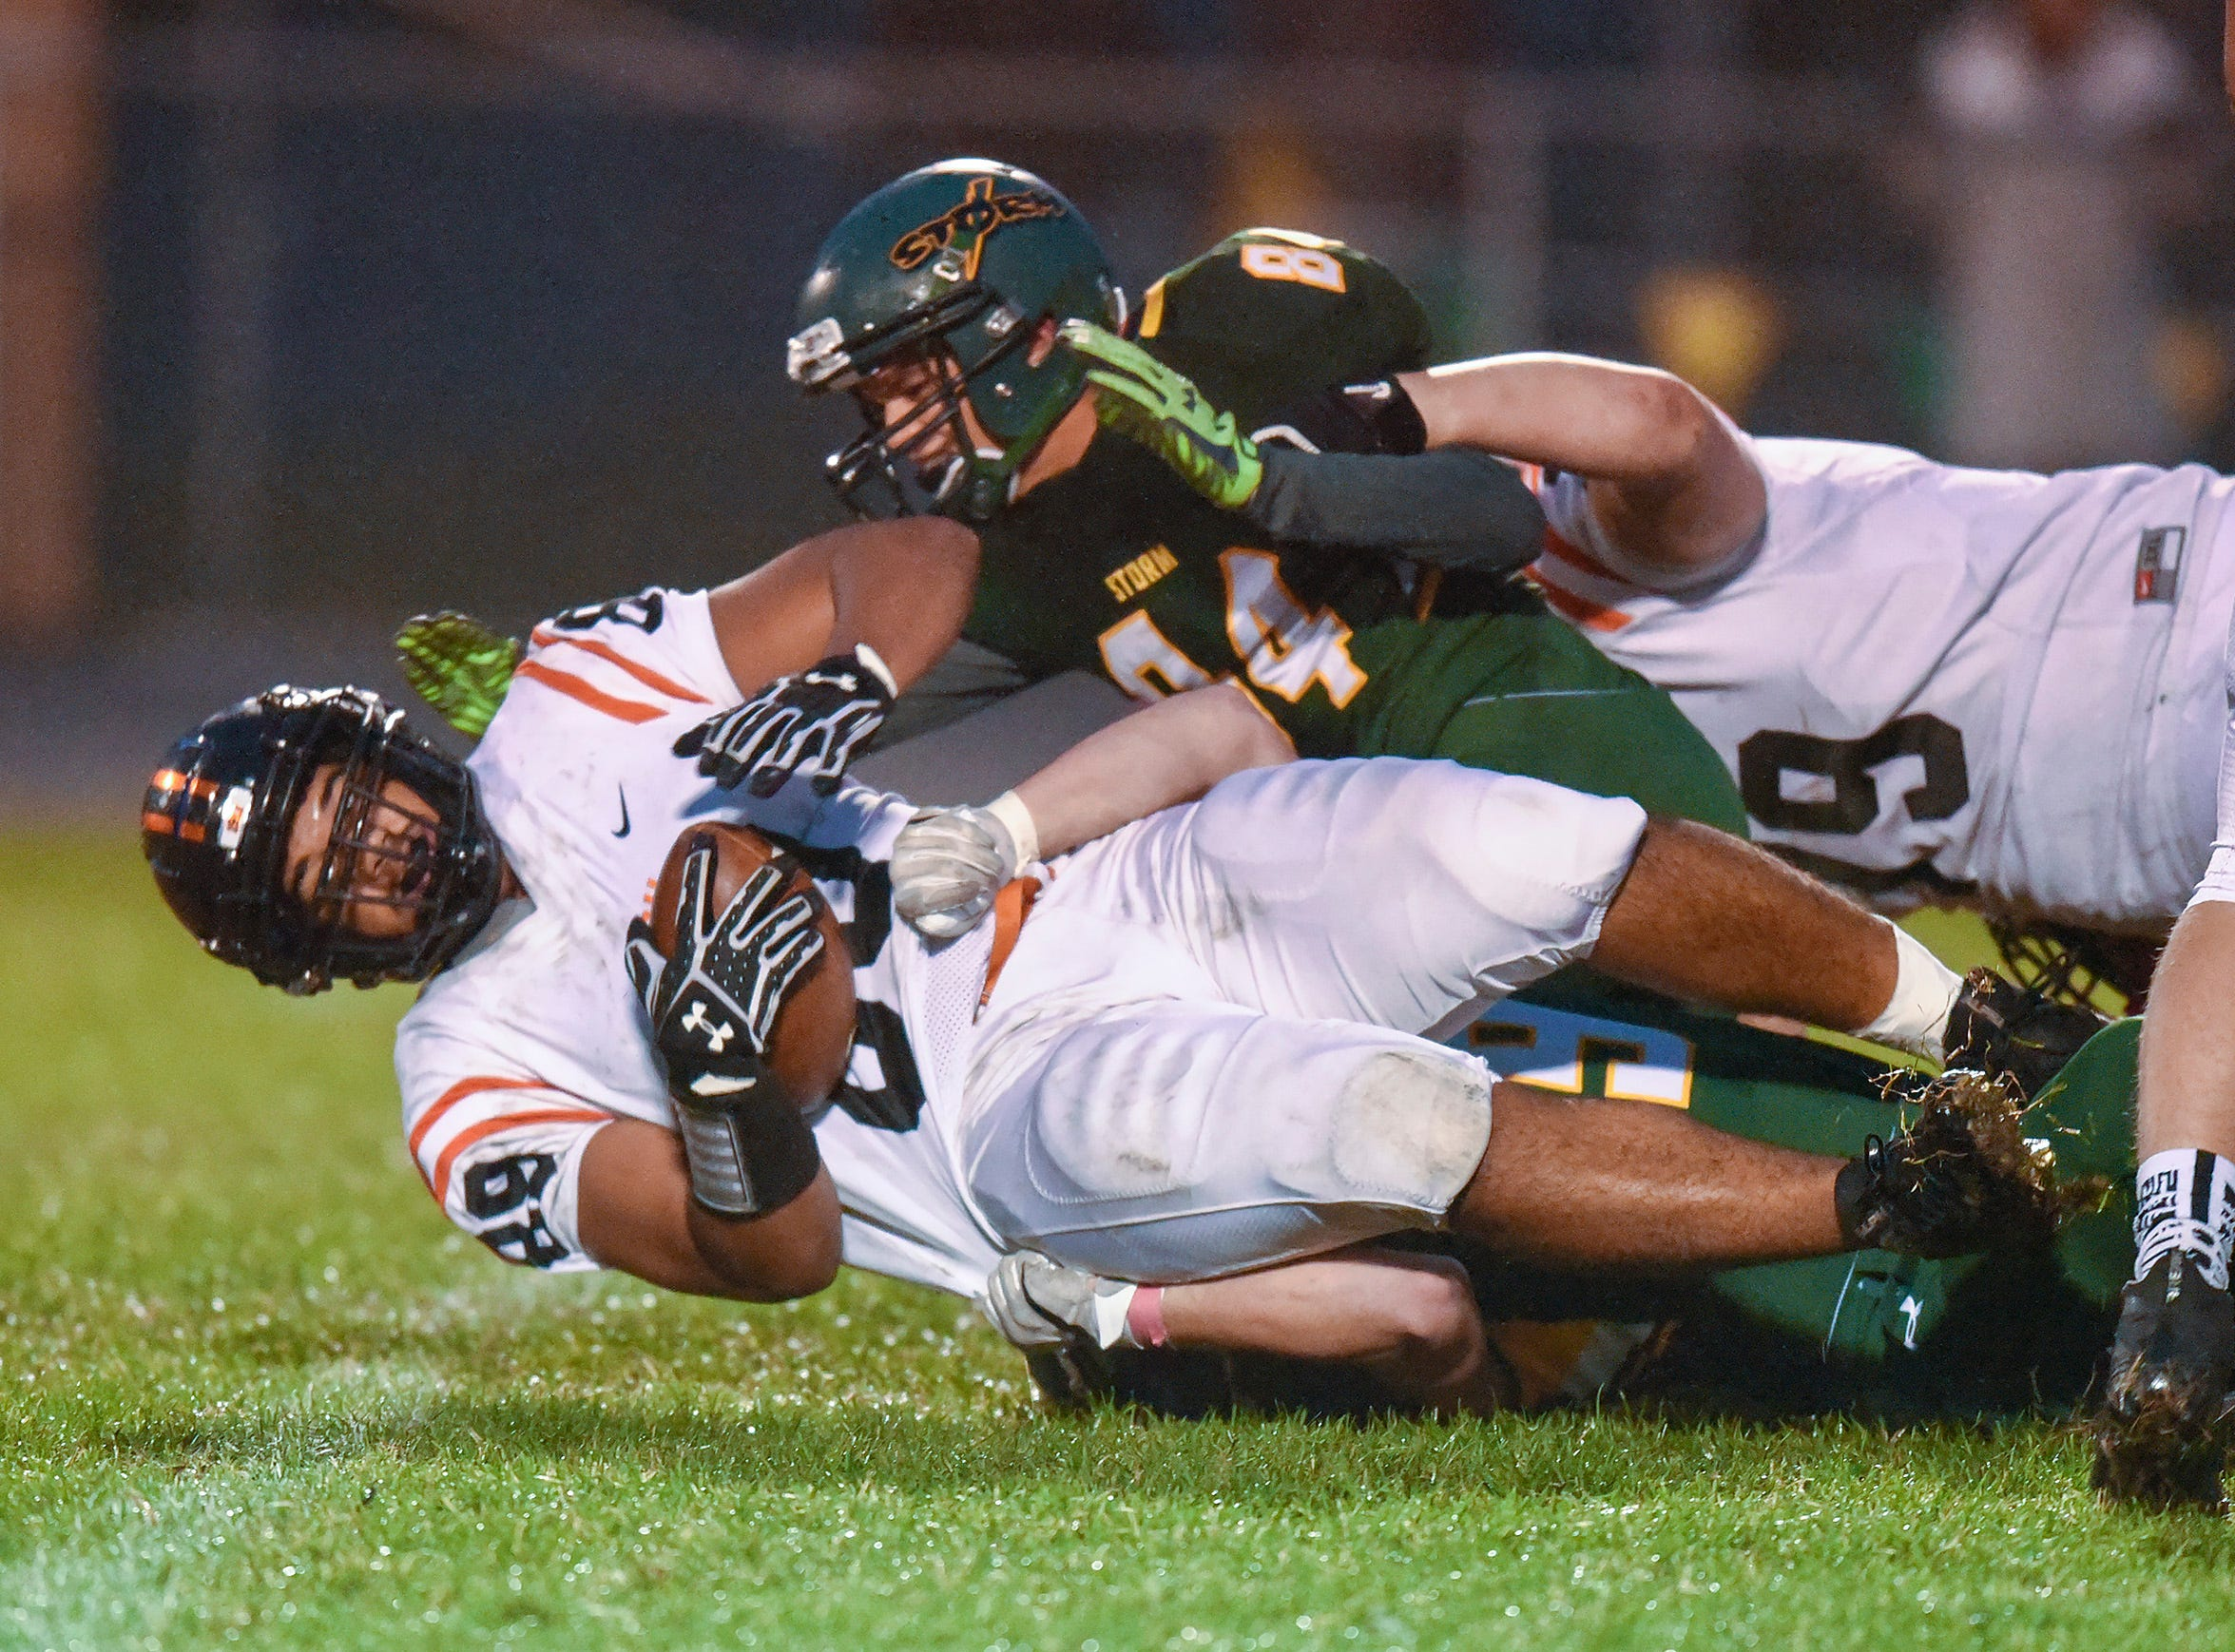 Tech's Major Campbell is brought down by the Sauk Rapids' defense during the first half Friday, Oct. 5, in Sauk Rapids.